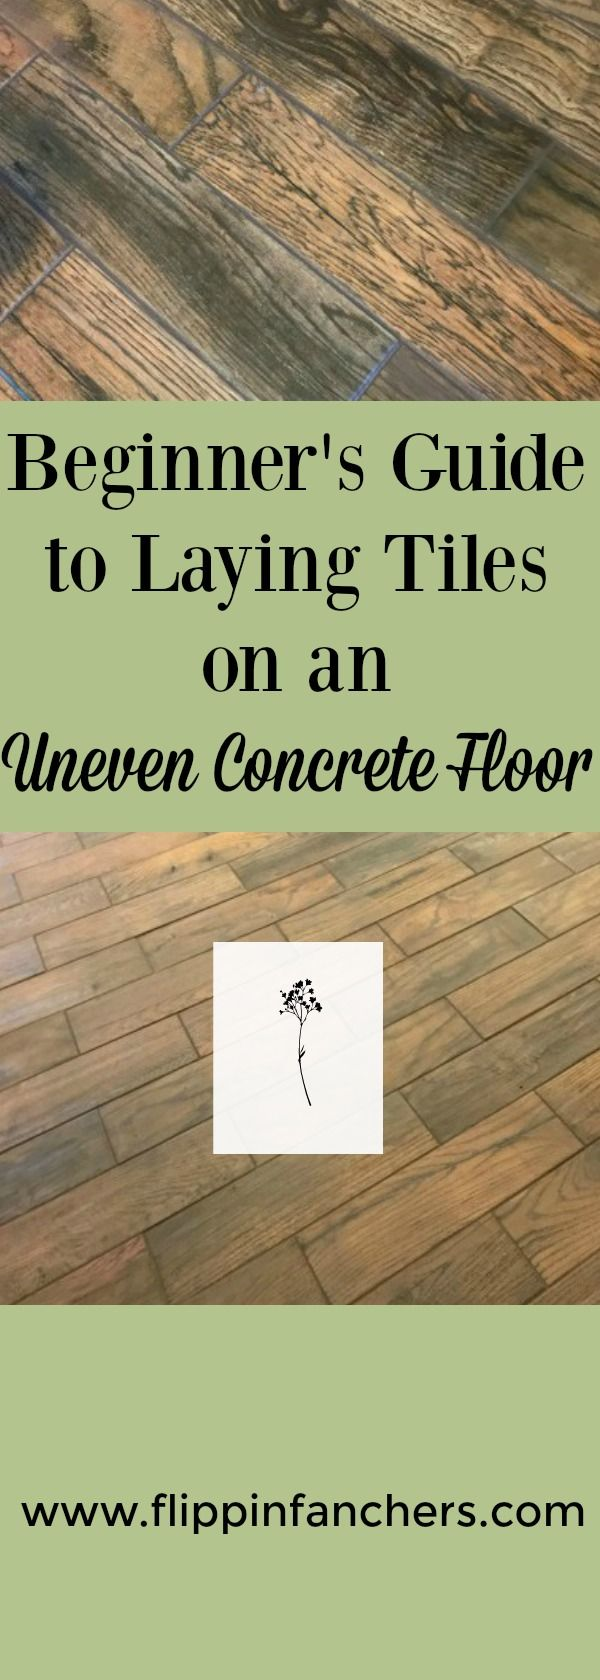 Best 25 laying tile ideas on pinterest how to tile a shower beginners guide to laying tiles on an uneven concrete floor dailygadgetfo Images